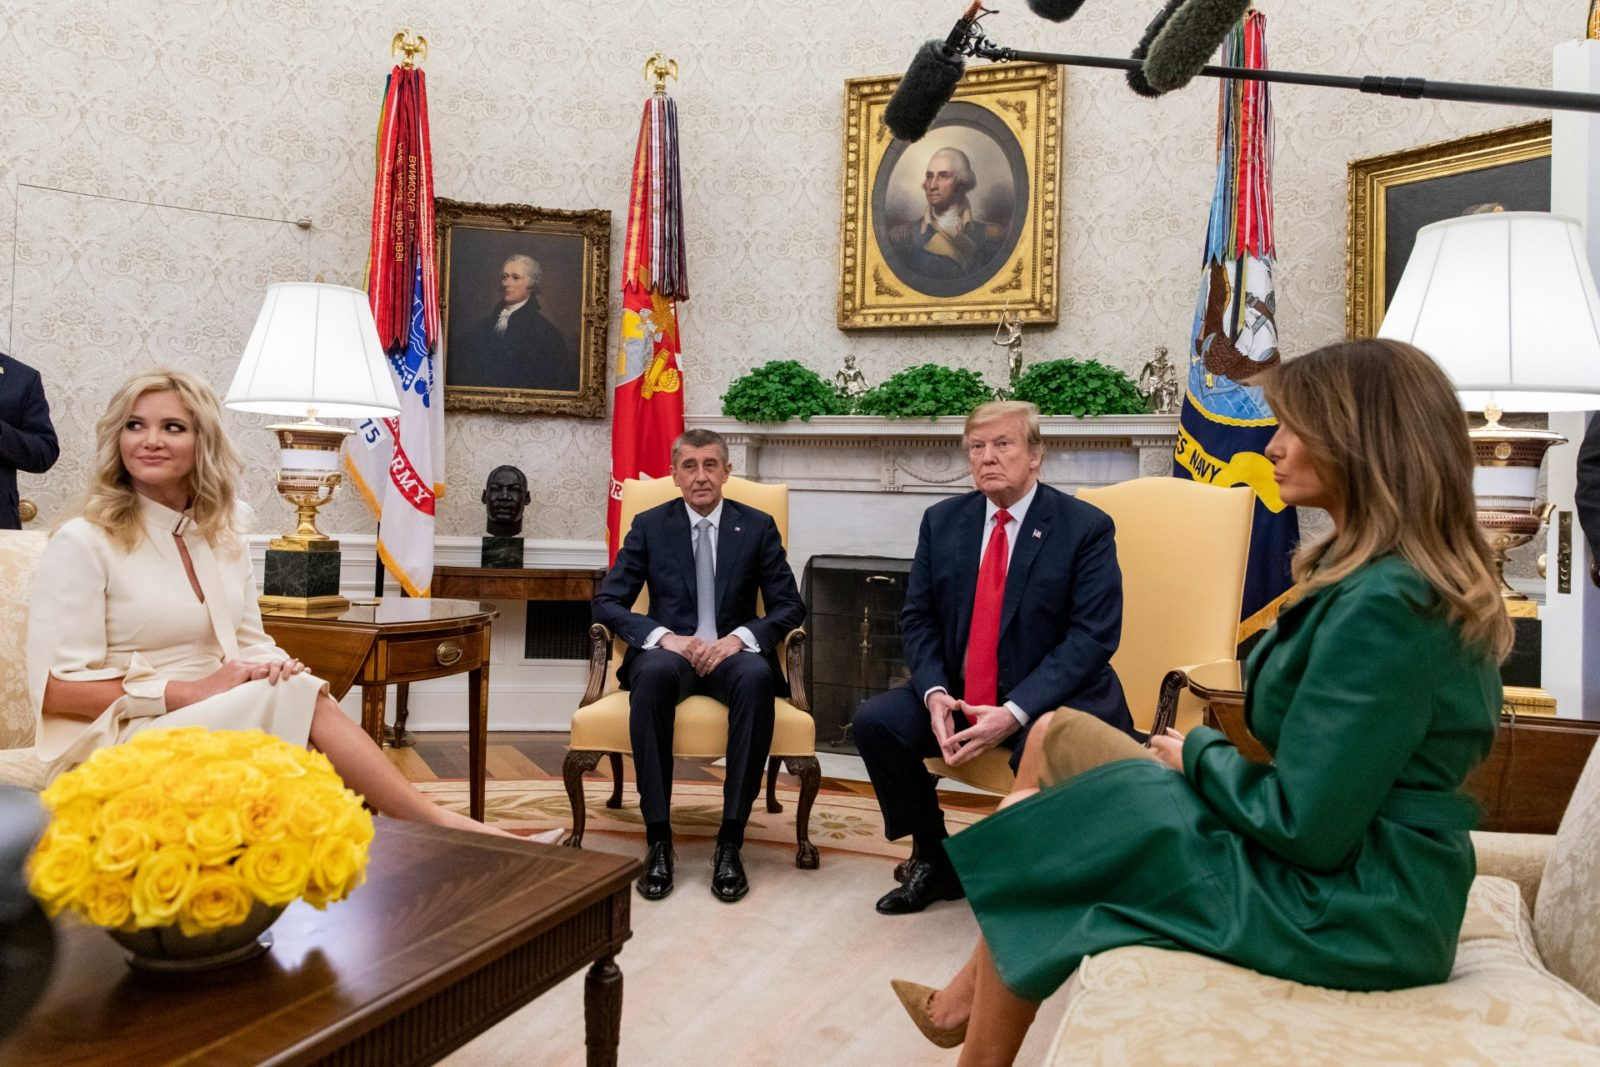 President Donald Trump and First Lady Melania Trump meet with the Prime Minister of the Czech Republic Andrej Babi and his wife Monika Babiová in the Oval Office at the White House. Source: Getty